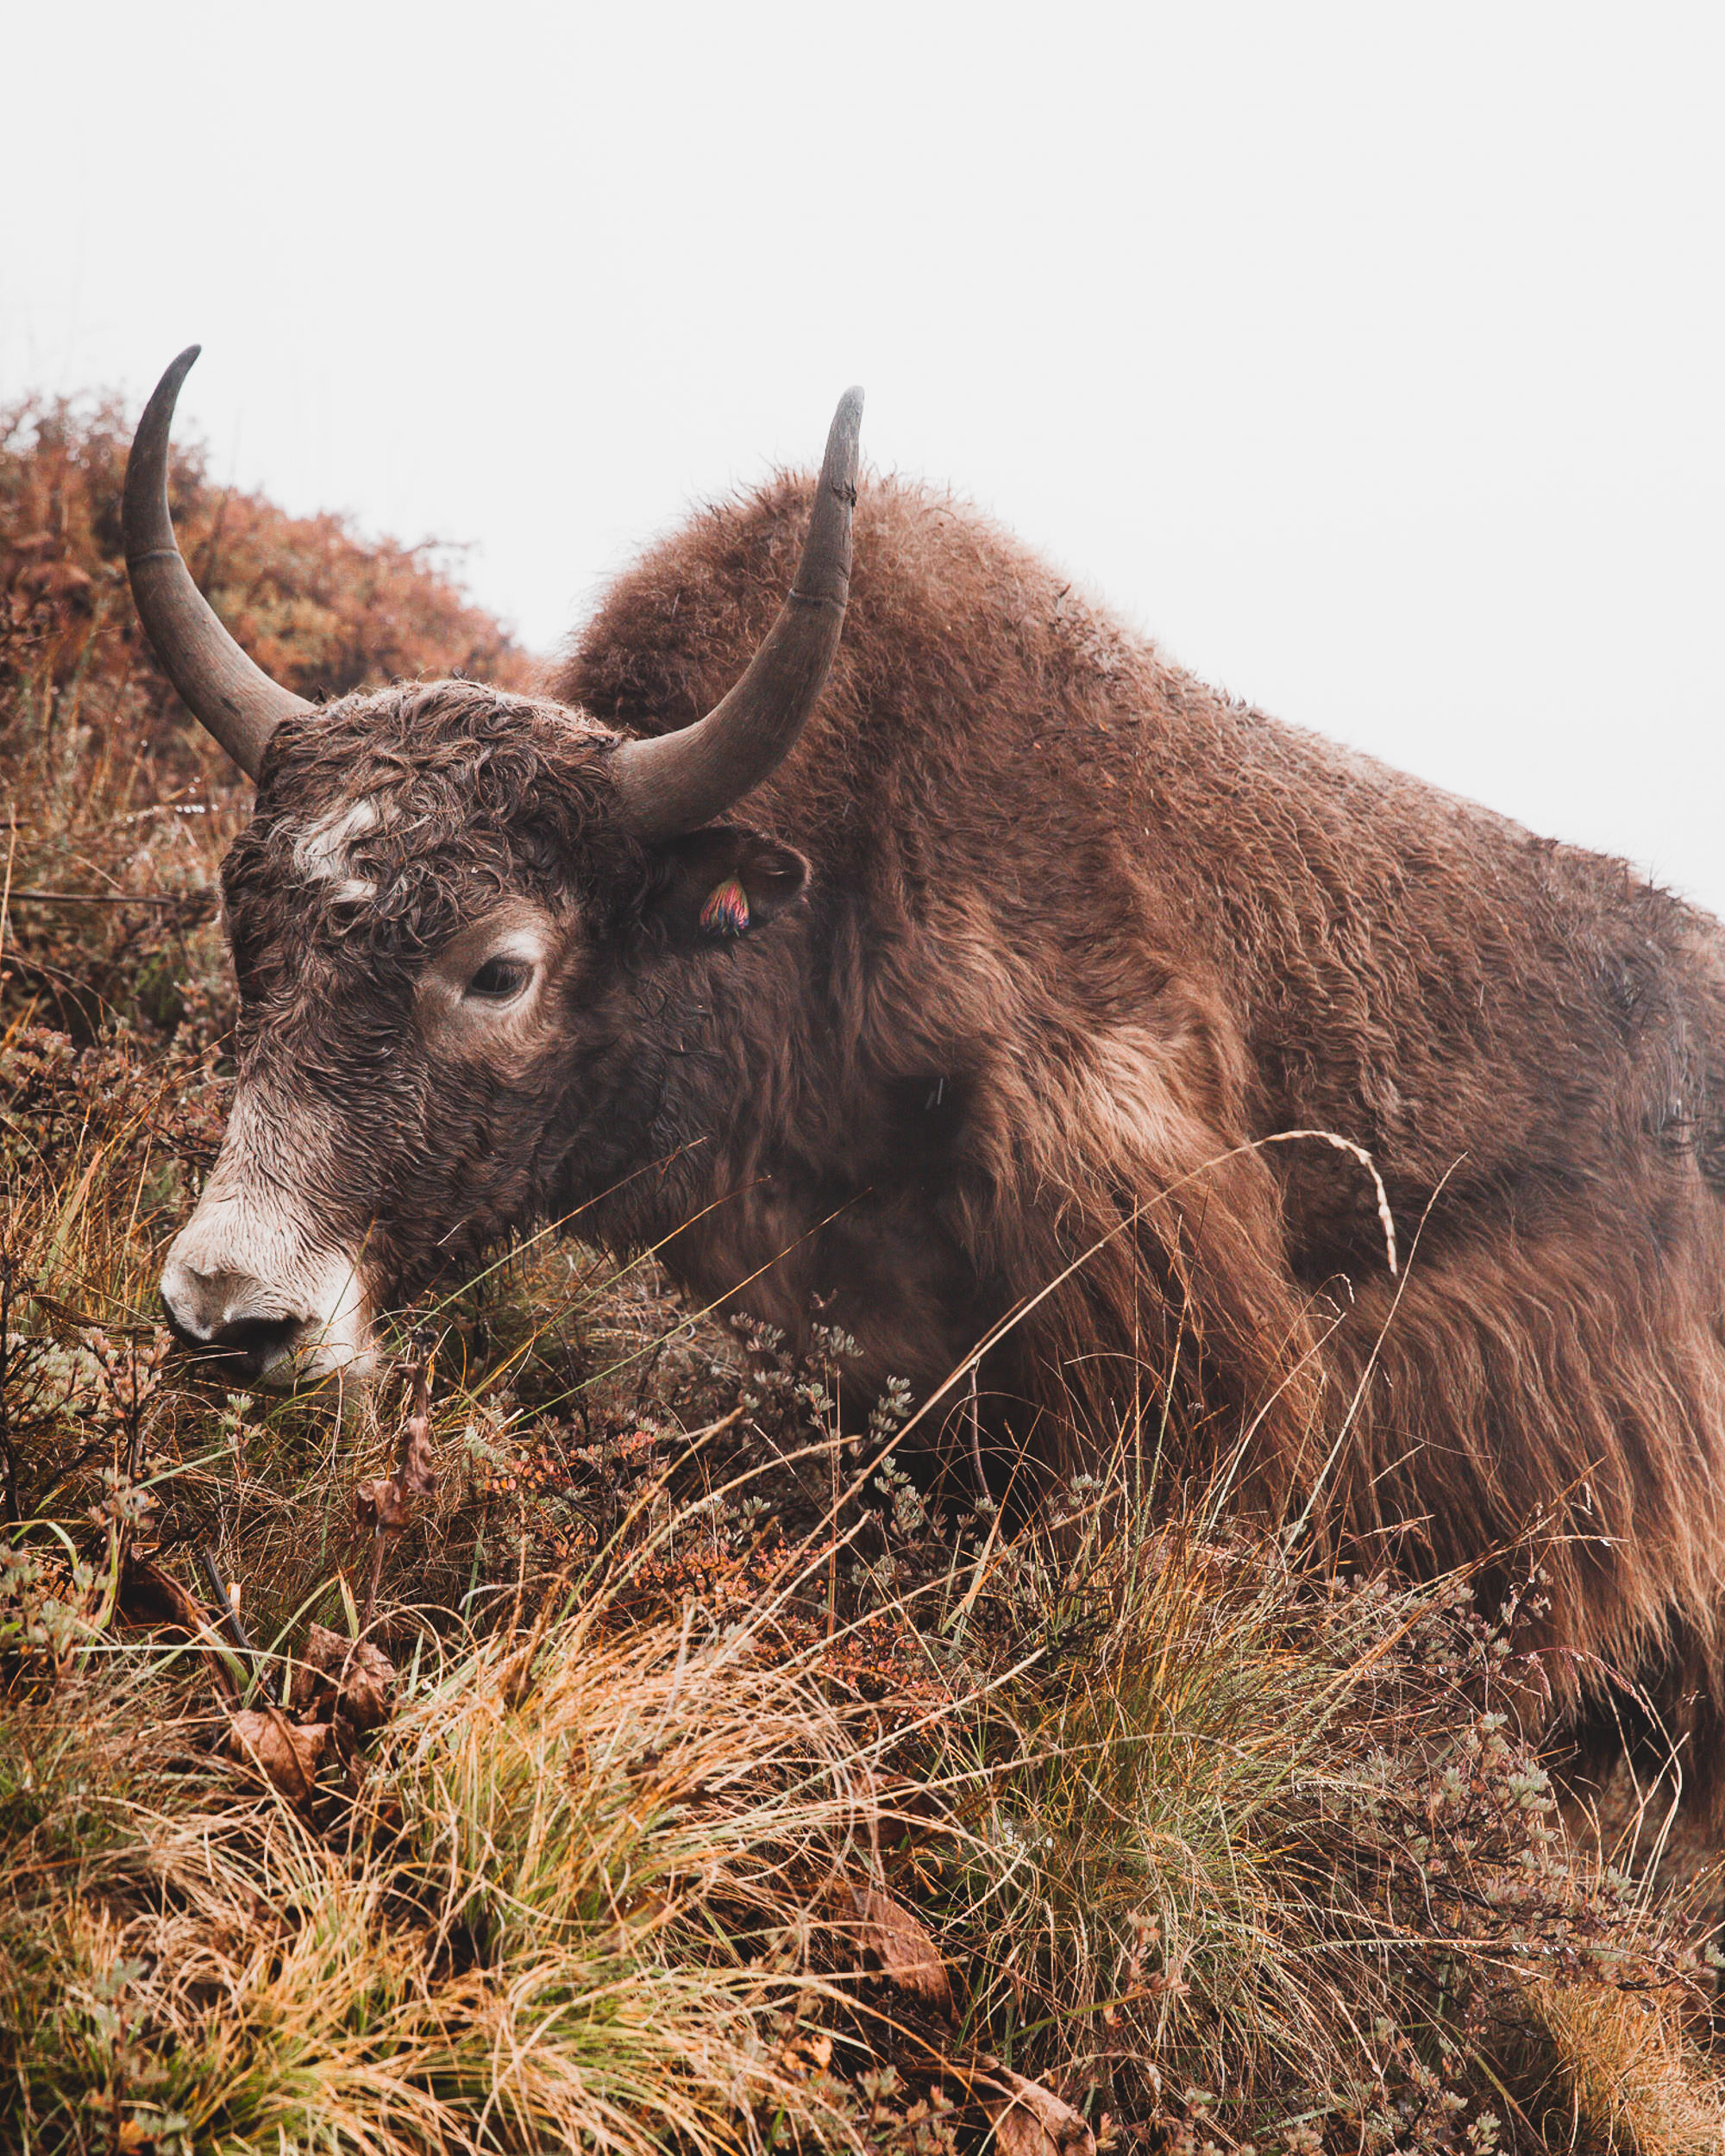 Yaks are common along the Annapurna Circuit. While generally peaceful, they are very large animals, and can make their size and presence known if threatened..